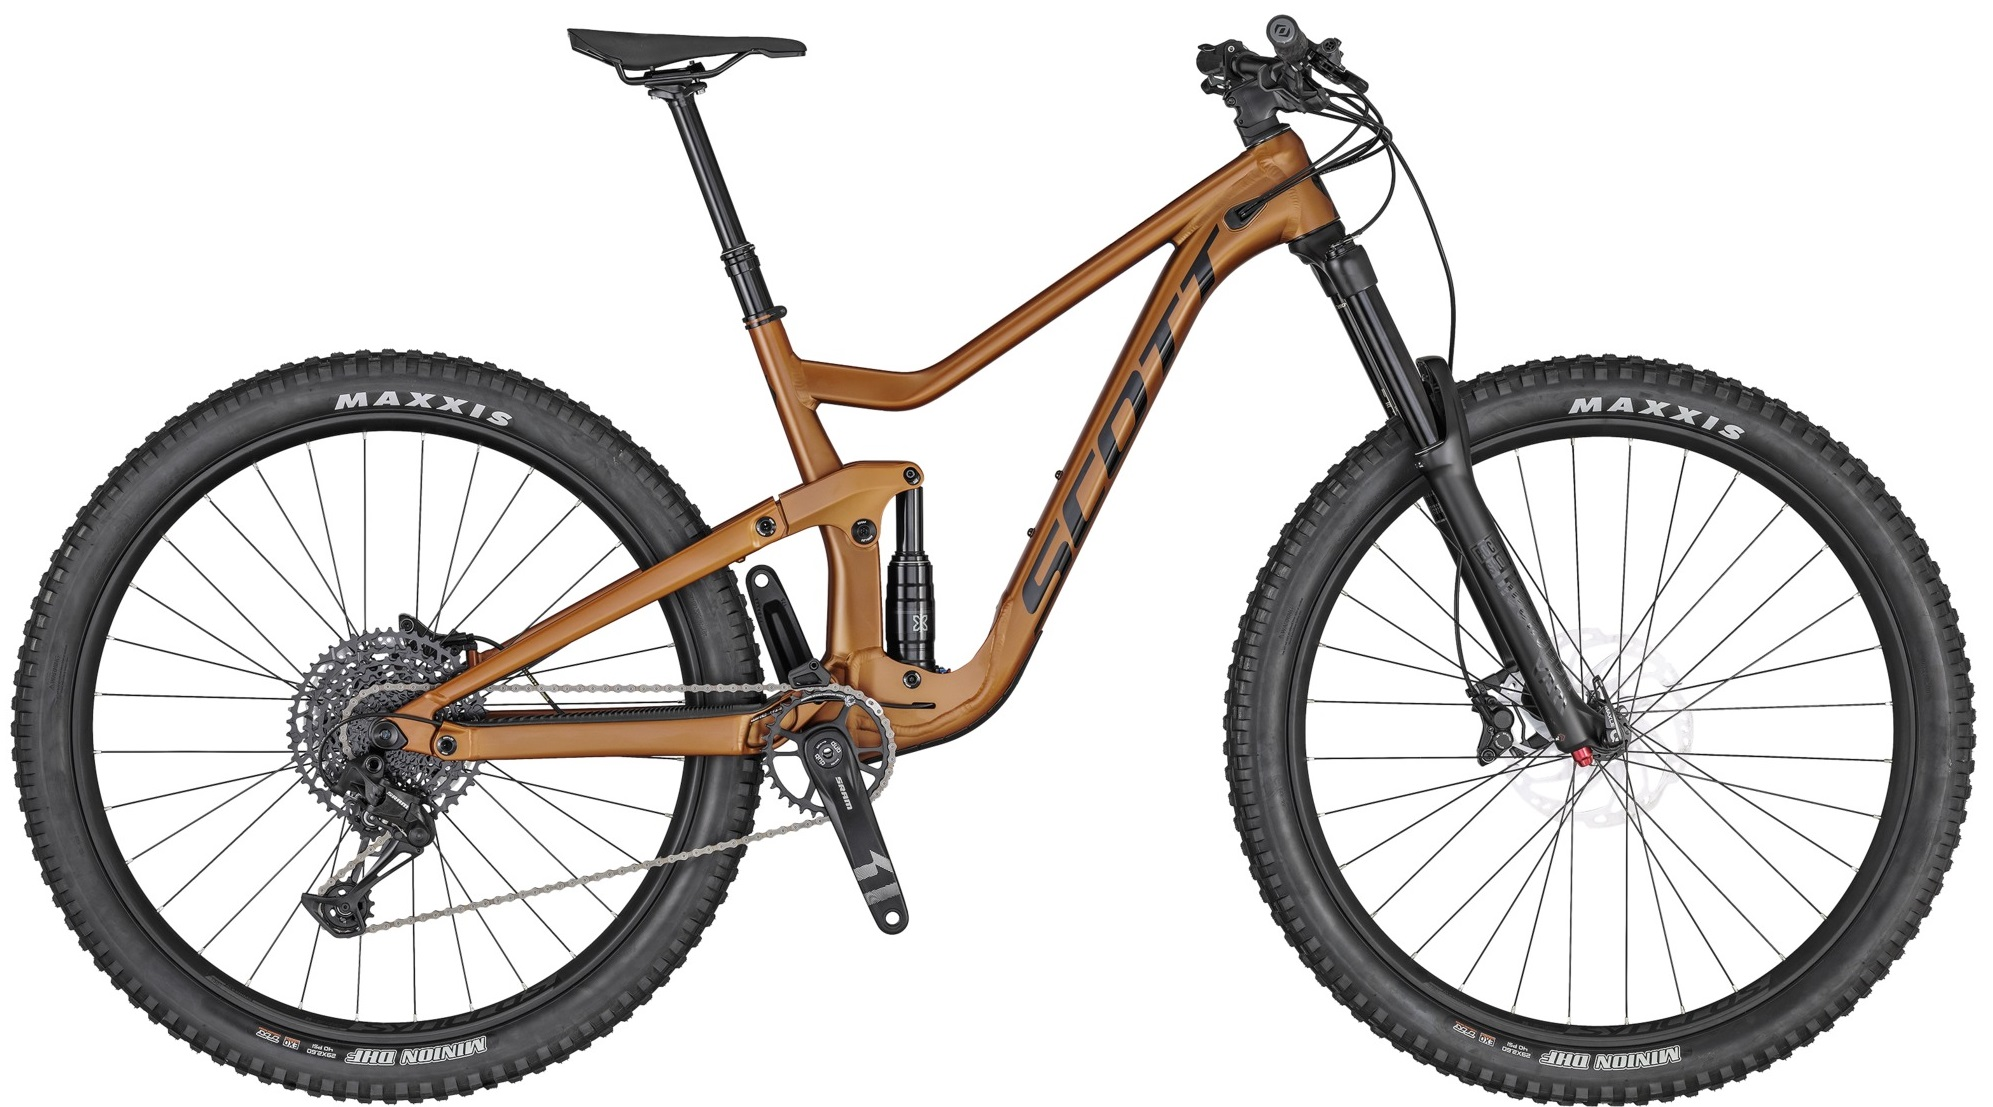 Giant enduro full suspension bike, 170mm travel, Maestro damping frame